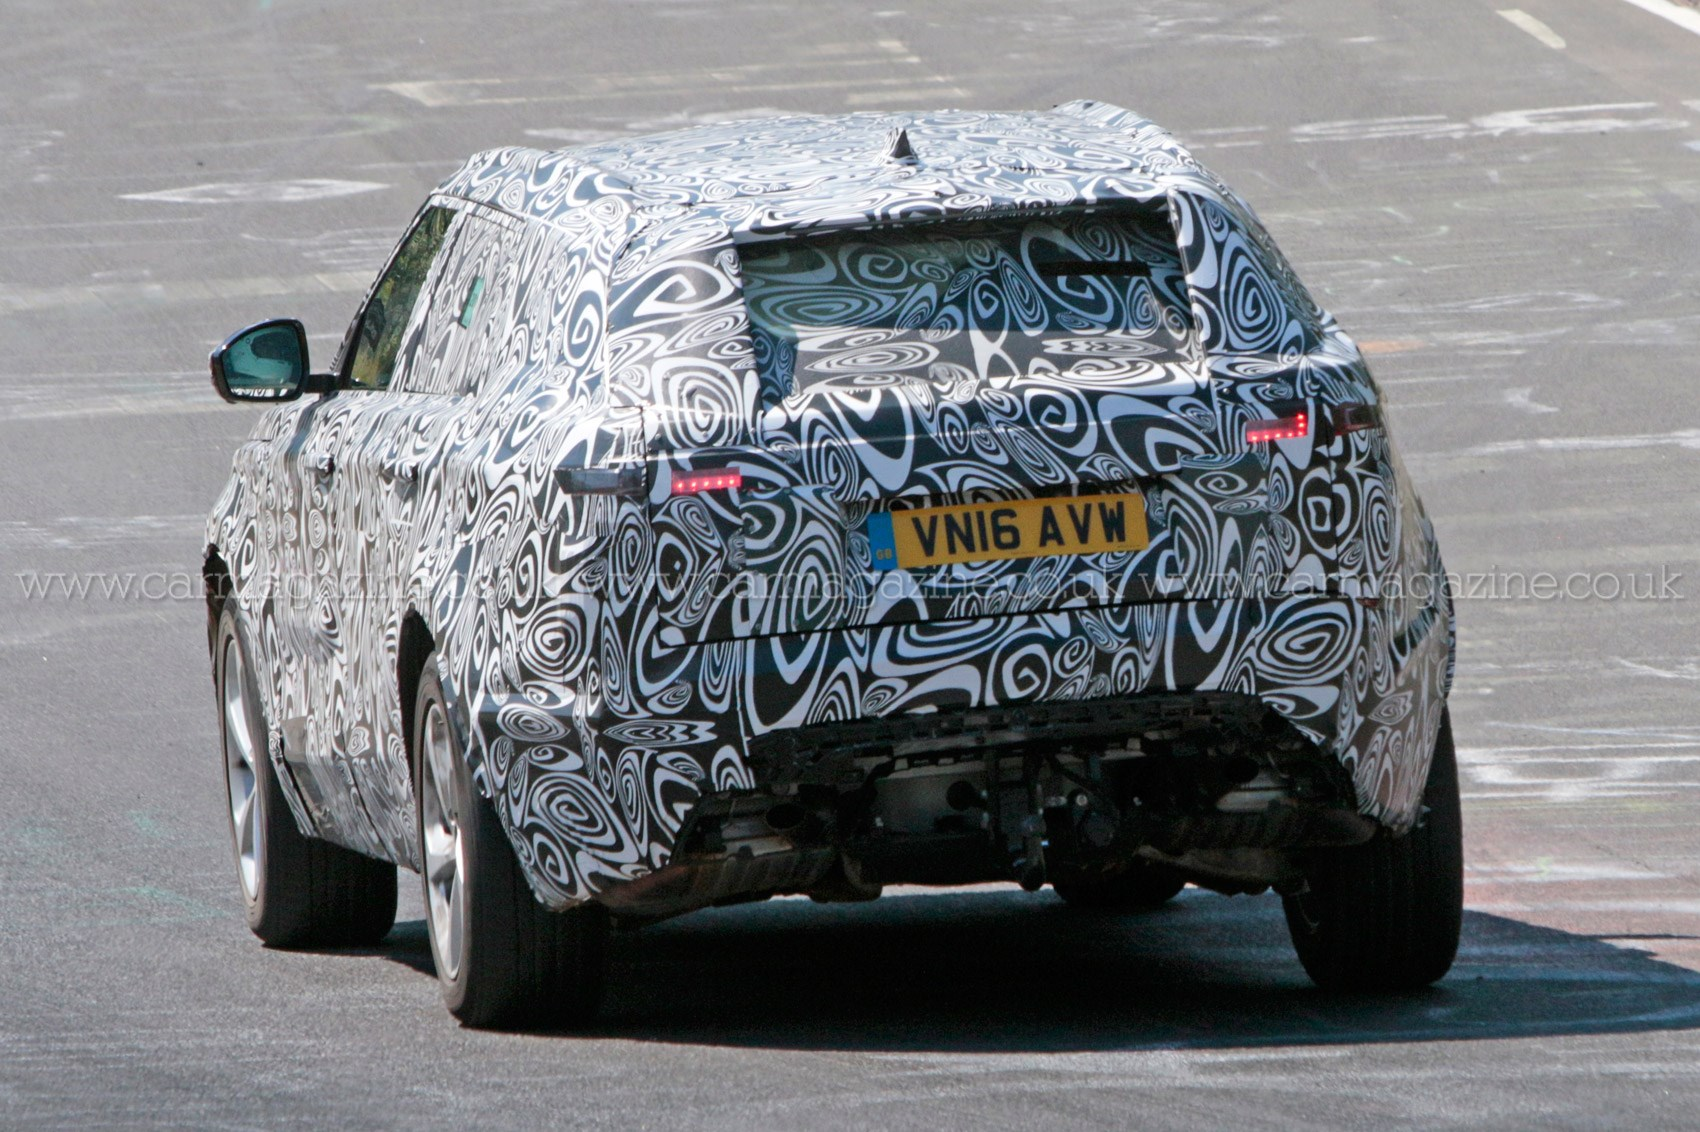 Fourth Range Rover Model Scooped Latest News On Land Rovers X6 Rival on 3 cylinder car engines